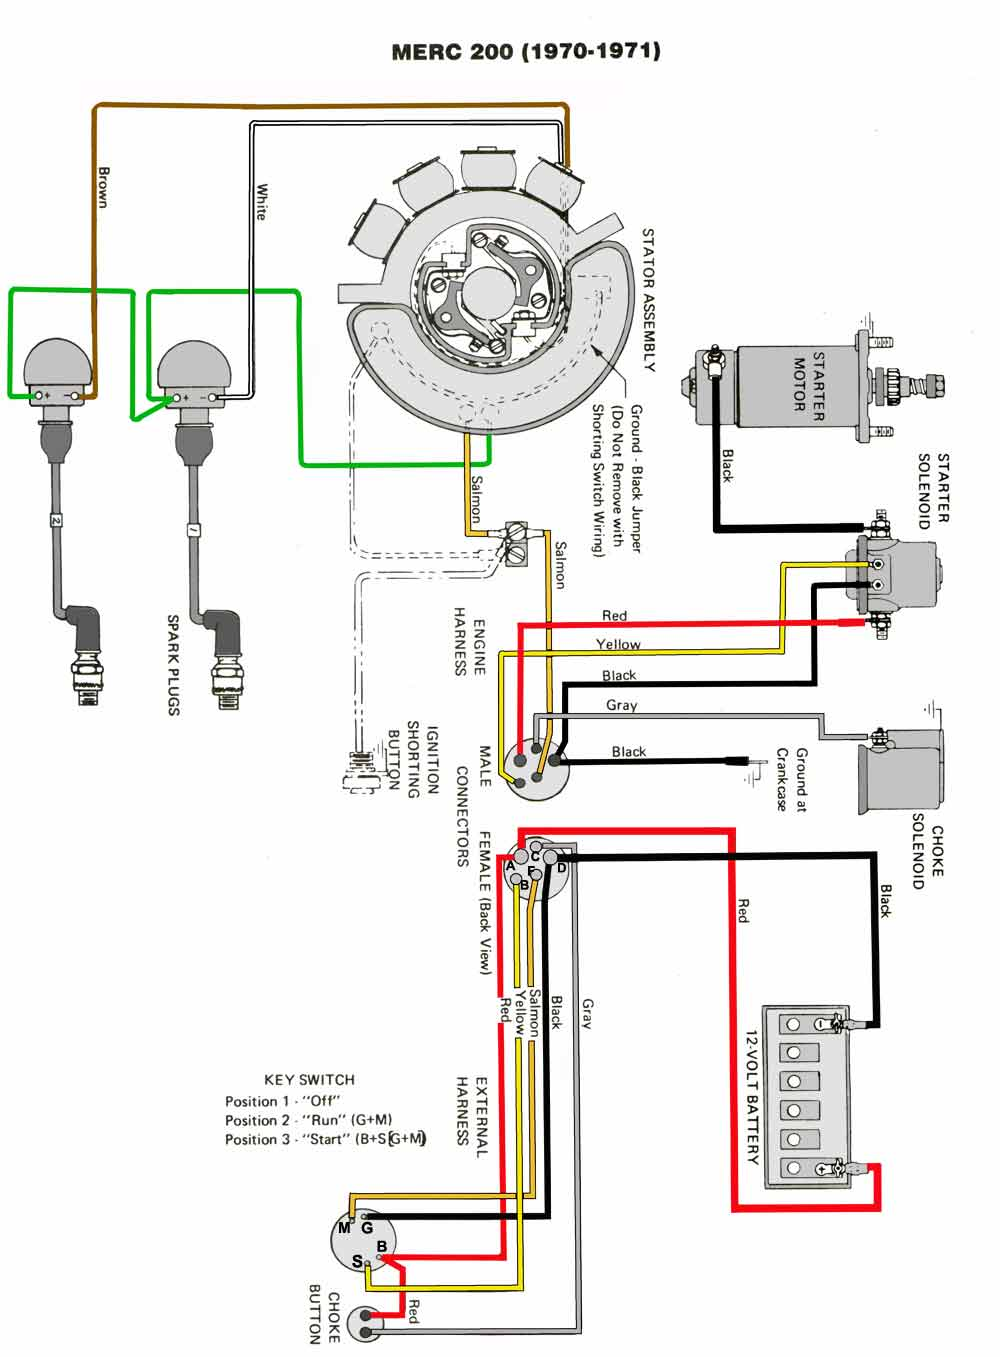 mercury outboard wiring diagrams -- mastertech marin mercury v6 outboard wiring diagram mercury outboard power trim wiring diagram mastertech marine